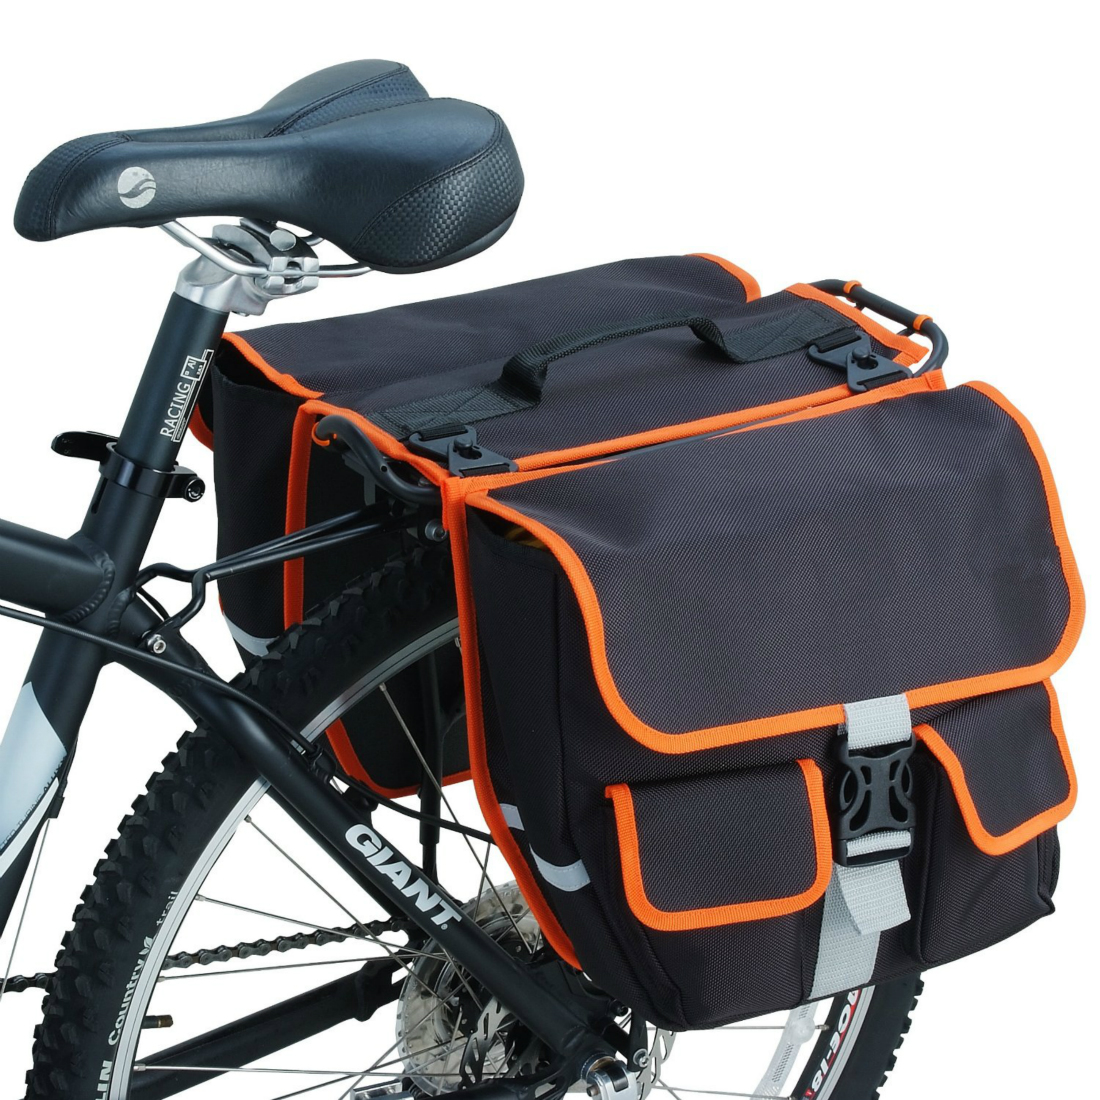 2018 New Pro Team MTB Mountain Bicycle Rack Pack Double Side Bike Luggage Bags Container Bag Panniers Cycling Outdoor Bags pro biker multifunction motorcycle riding travel luggage saddle bag bicycle side bags saddlebags motor rainproof tool tail bags